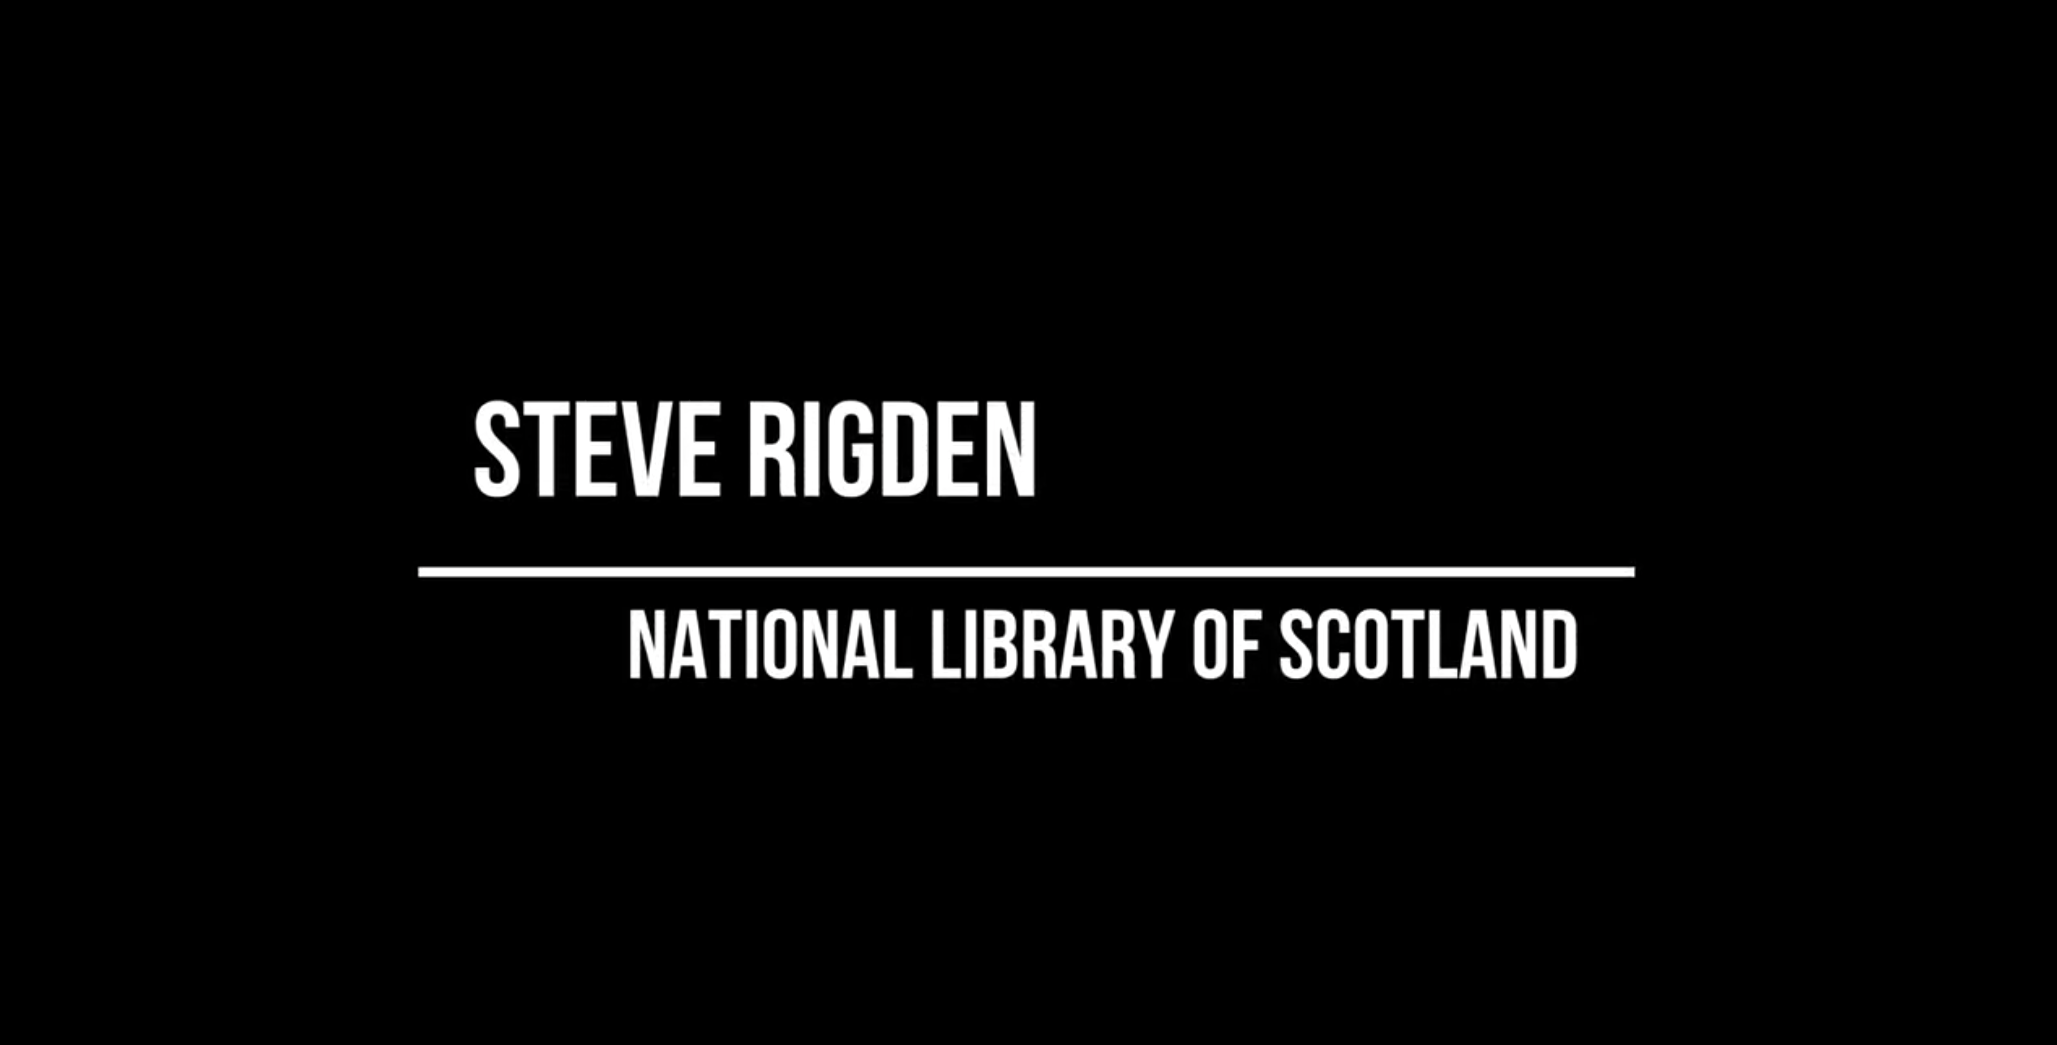 Workshop 1 – Steve Rigden – Sensitivity Review and Access to Digital Materials at the National Library of Scotland